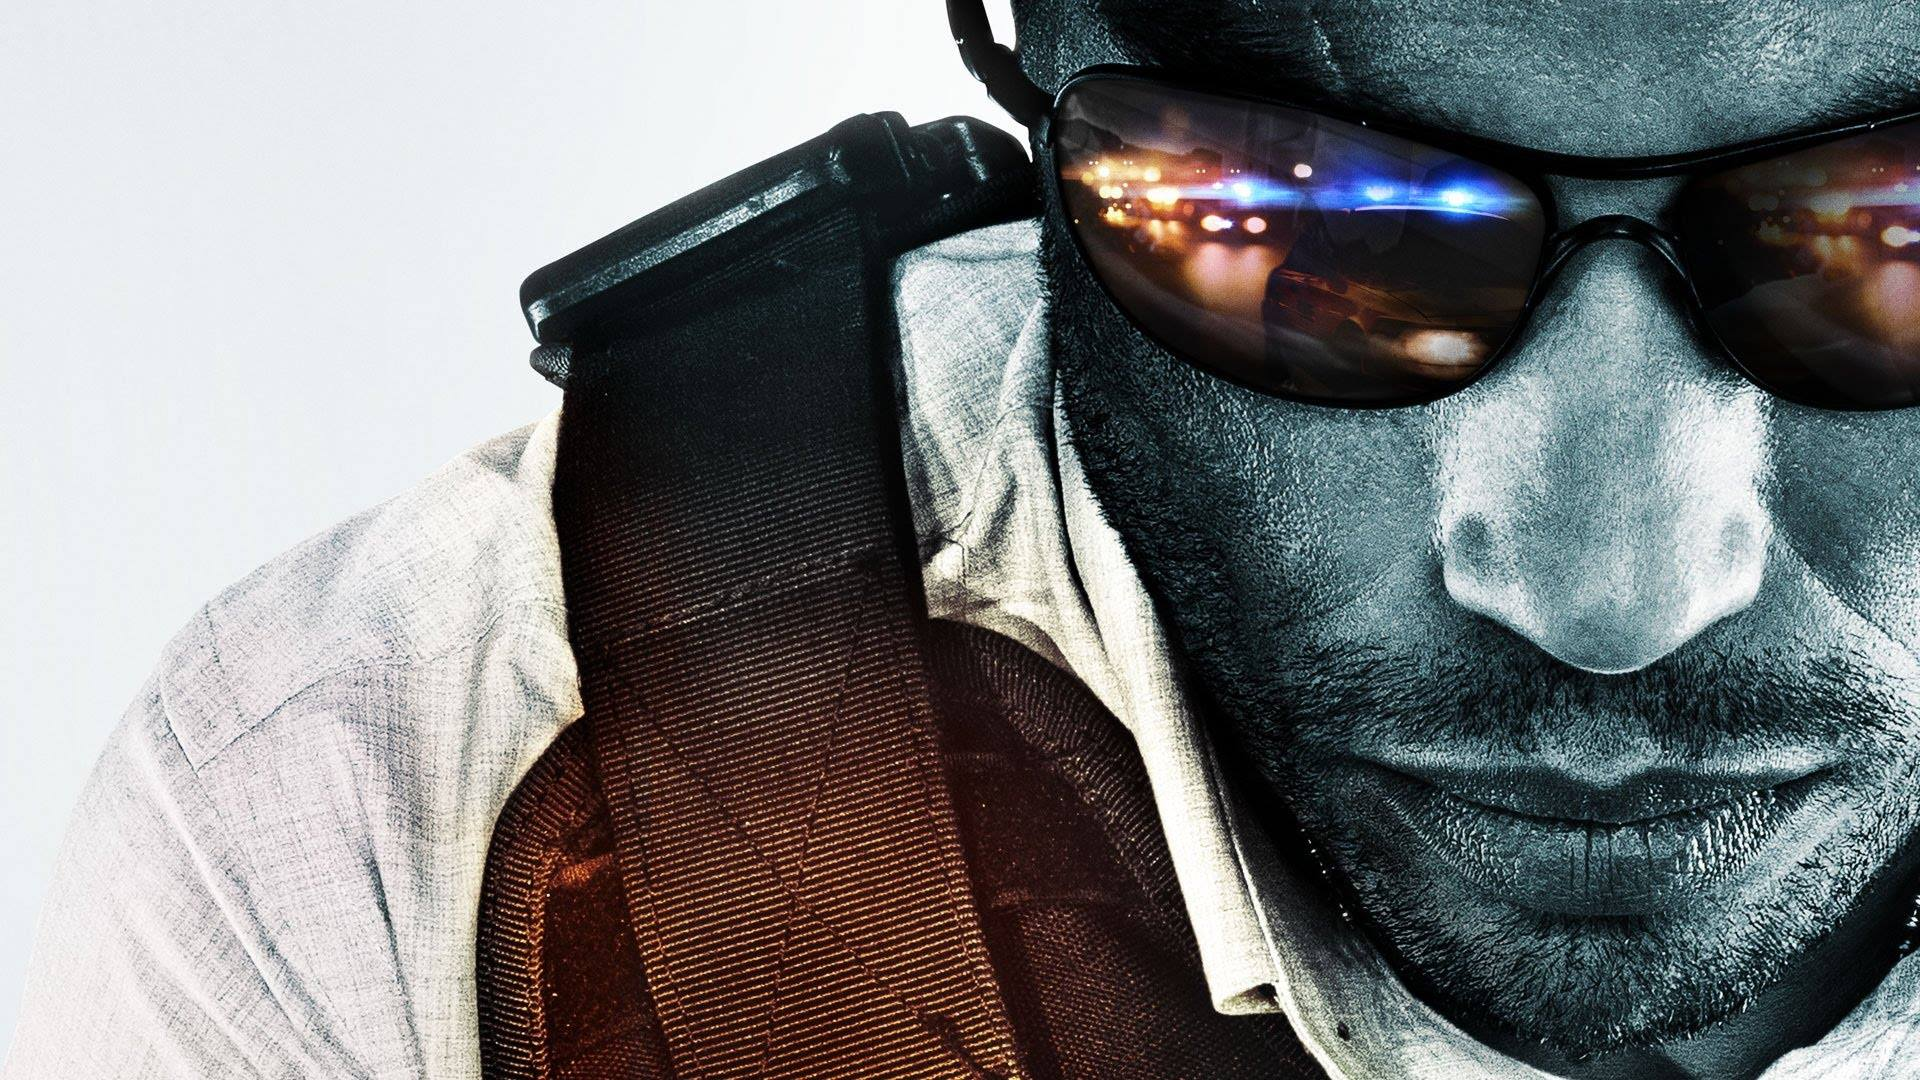 wallpaper (battlefield_hardline_5.jpg)